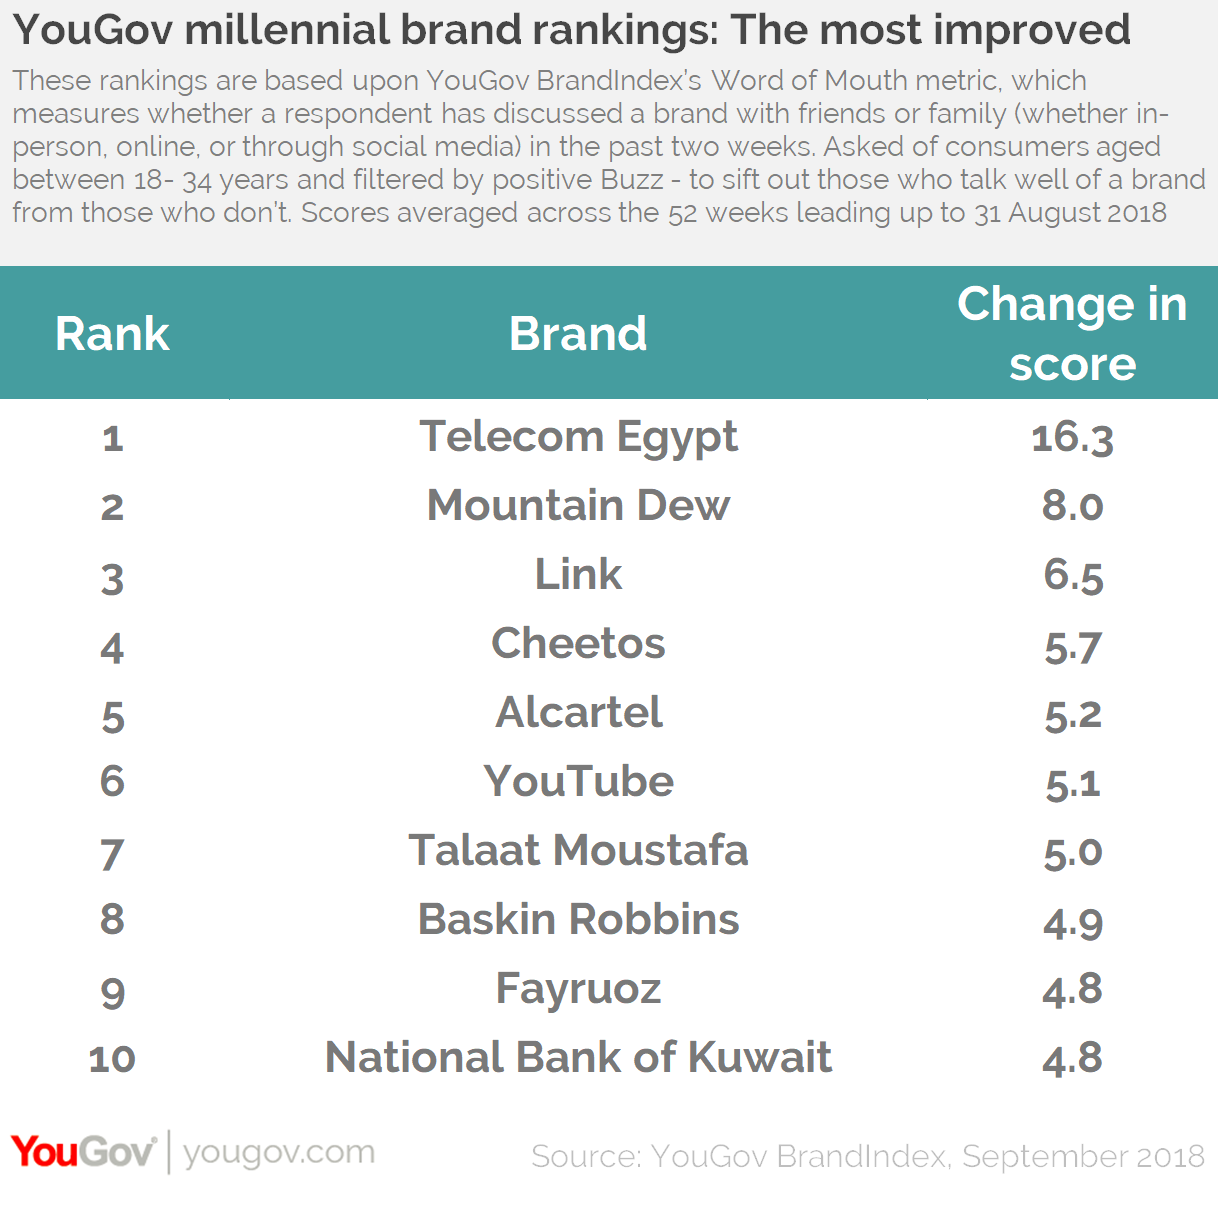 YouGov Millennial Brand Rankings: Top 10 Improvers Egypt